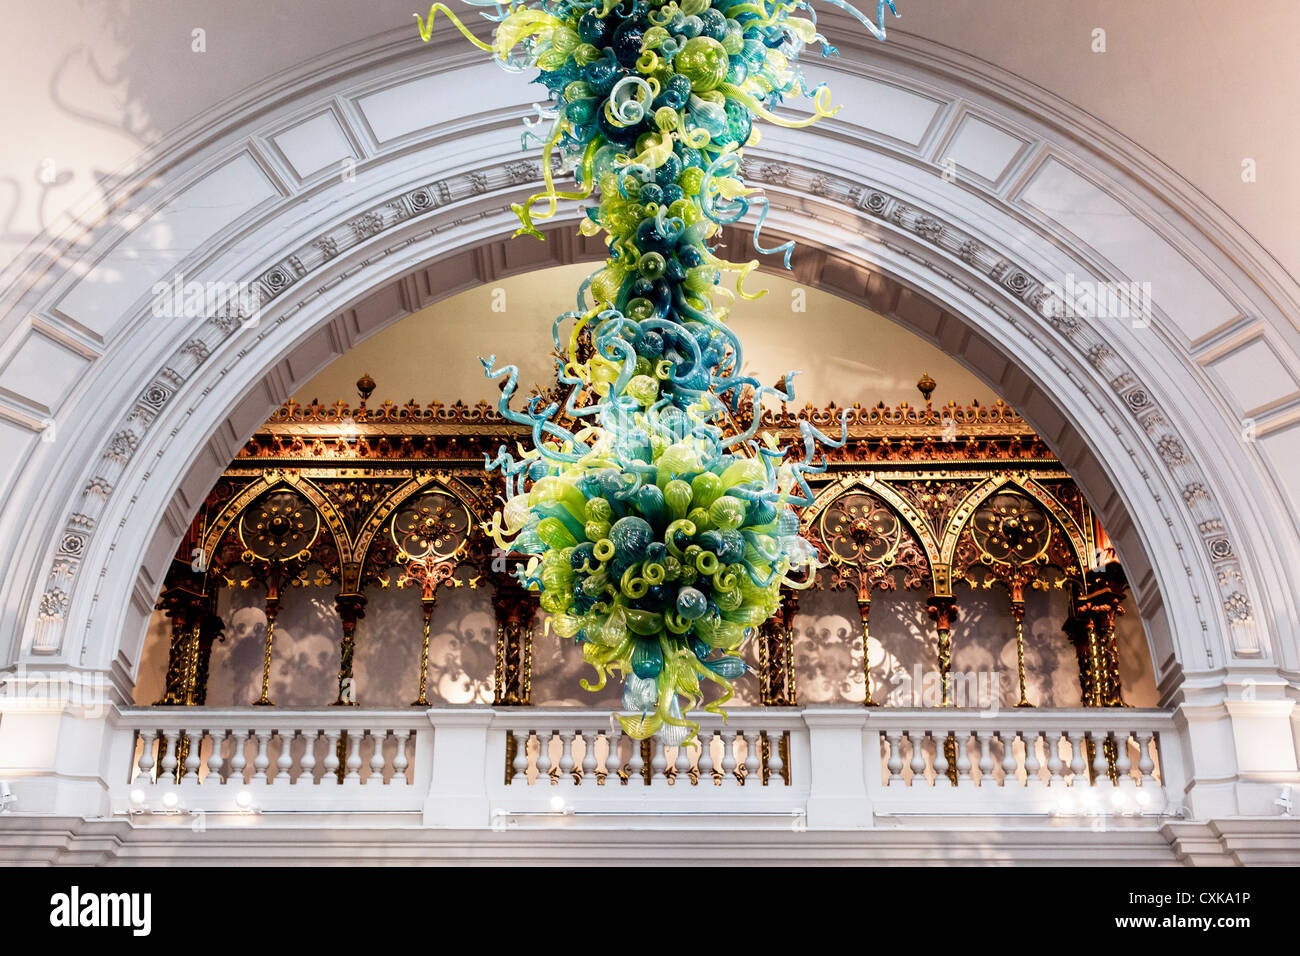 Blown Glass Chandelier By American Artist Dale Chihuly In The Grand Entrance Of Victoria And Albert Museum London